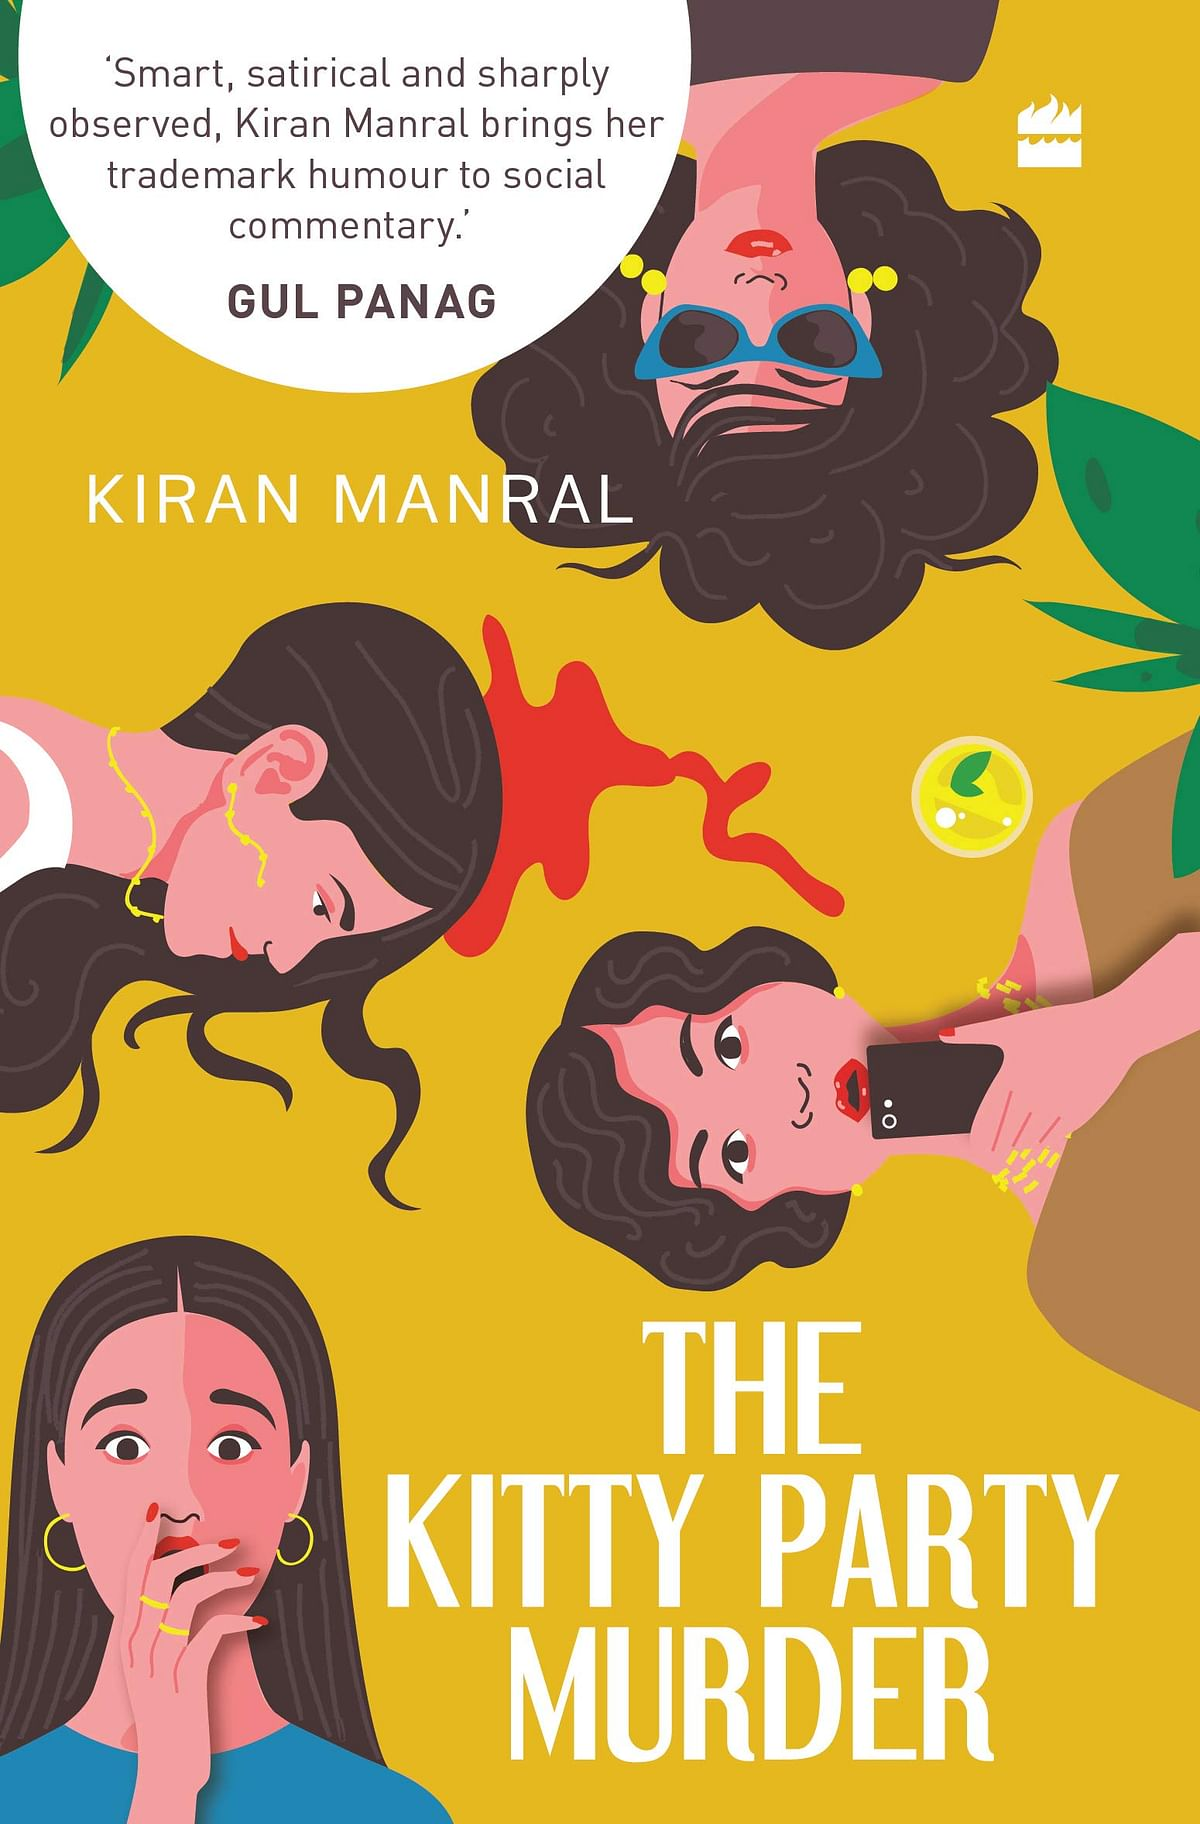 The Kitty Party Murder: A Gripping Mystery, Served With Dollops Of Humour, Wit And Satire